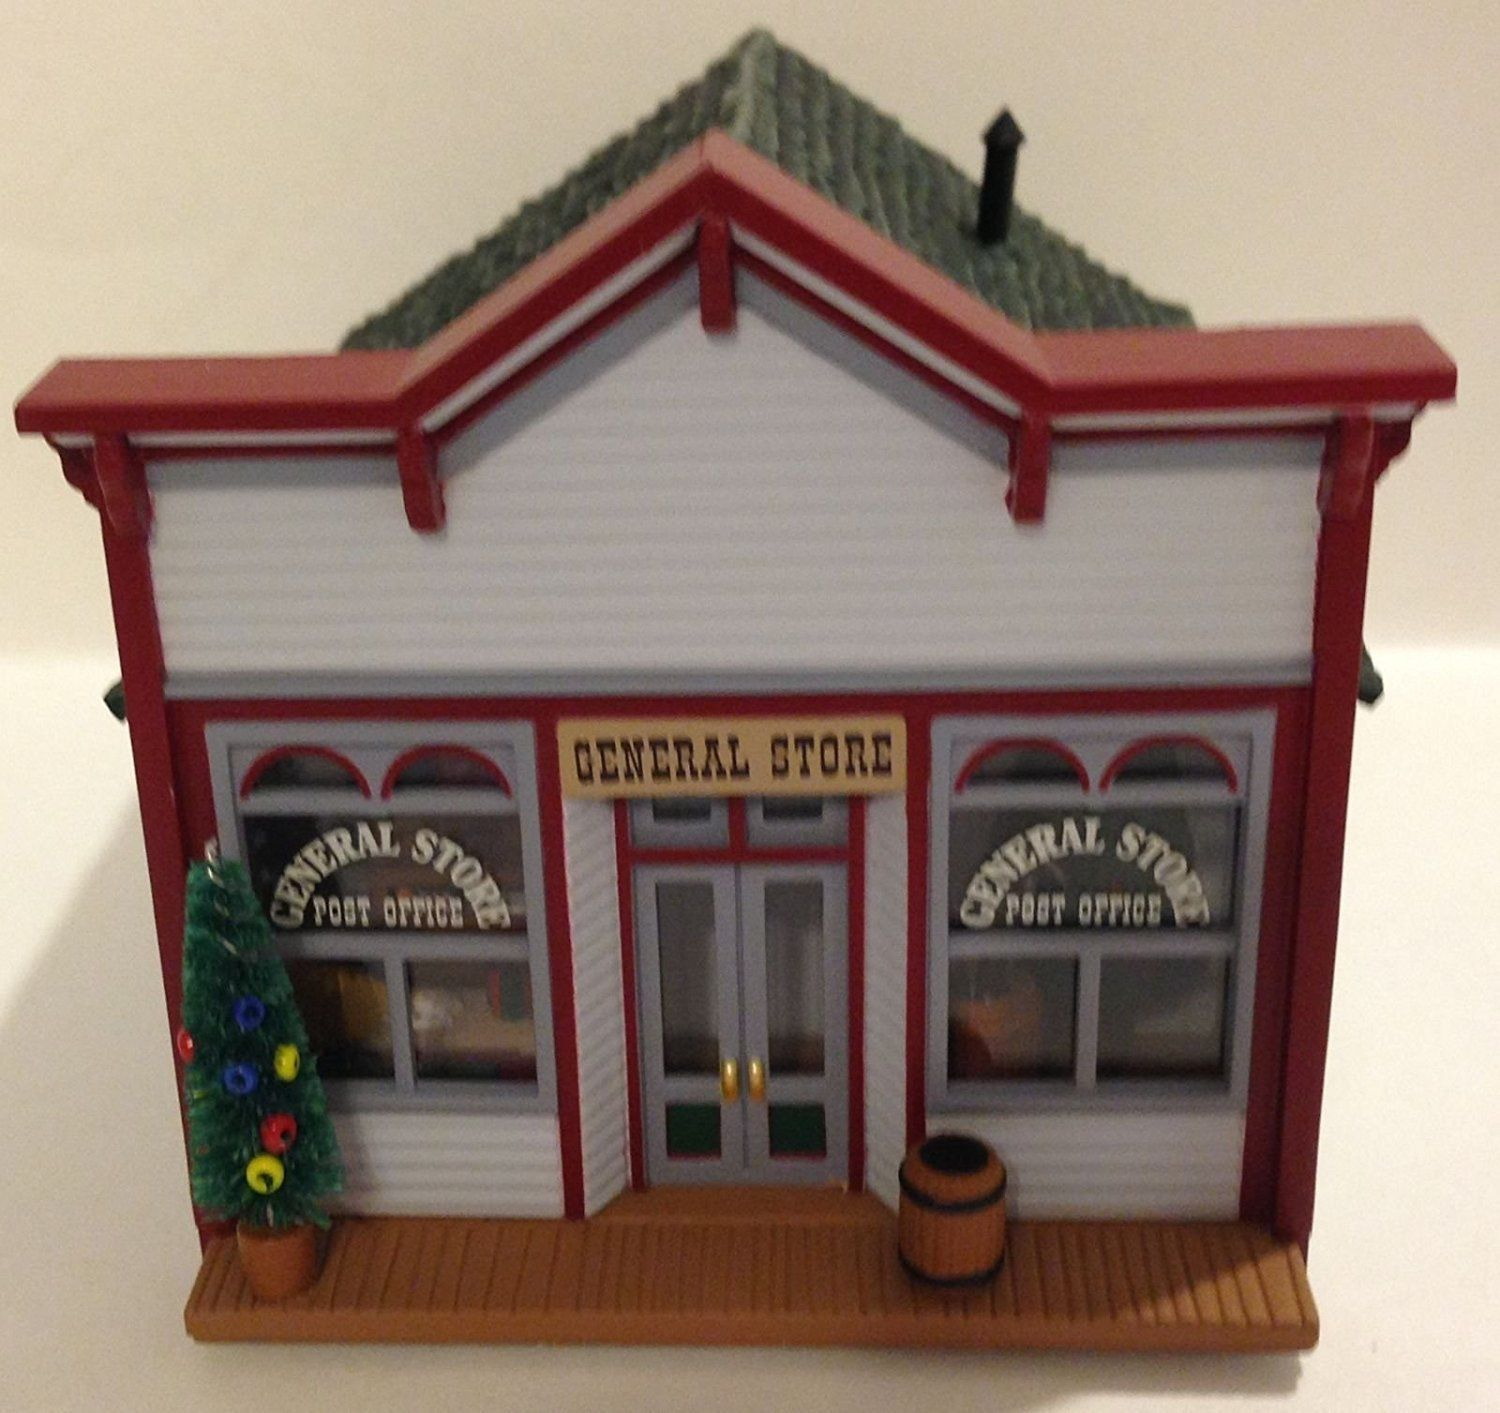 Mrs. Parkley's General Store (The Sarah Plain and Tall Collection ) Hallmark image 2